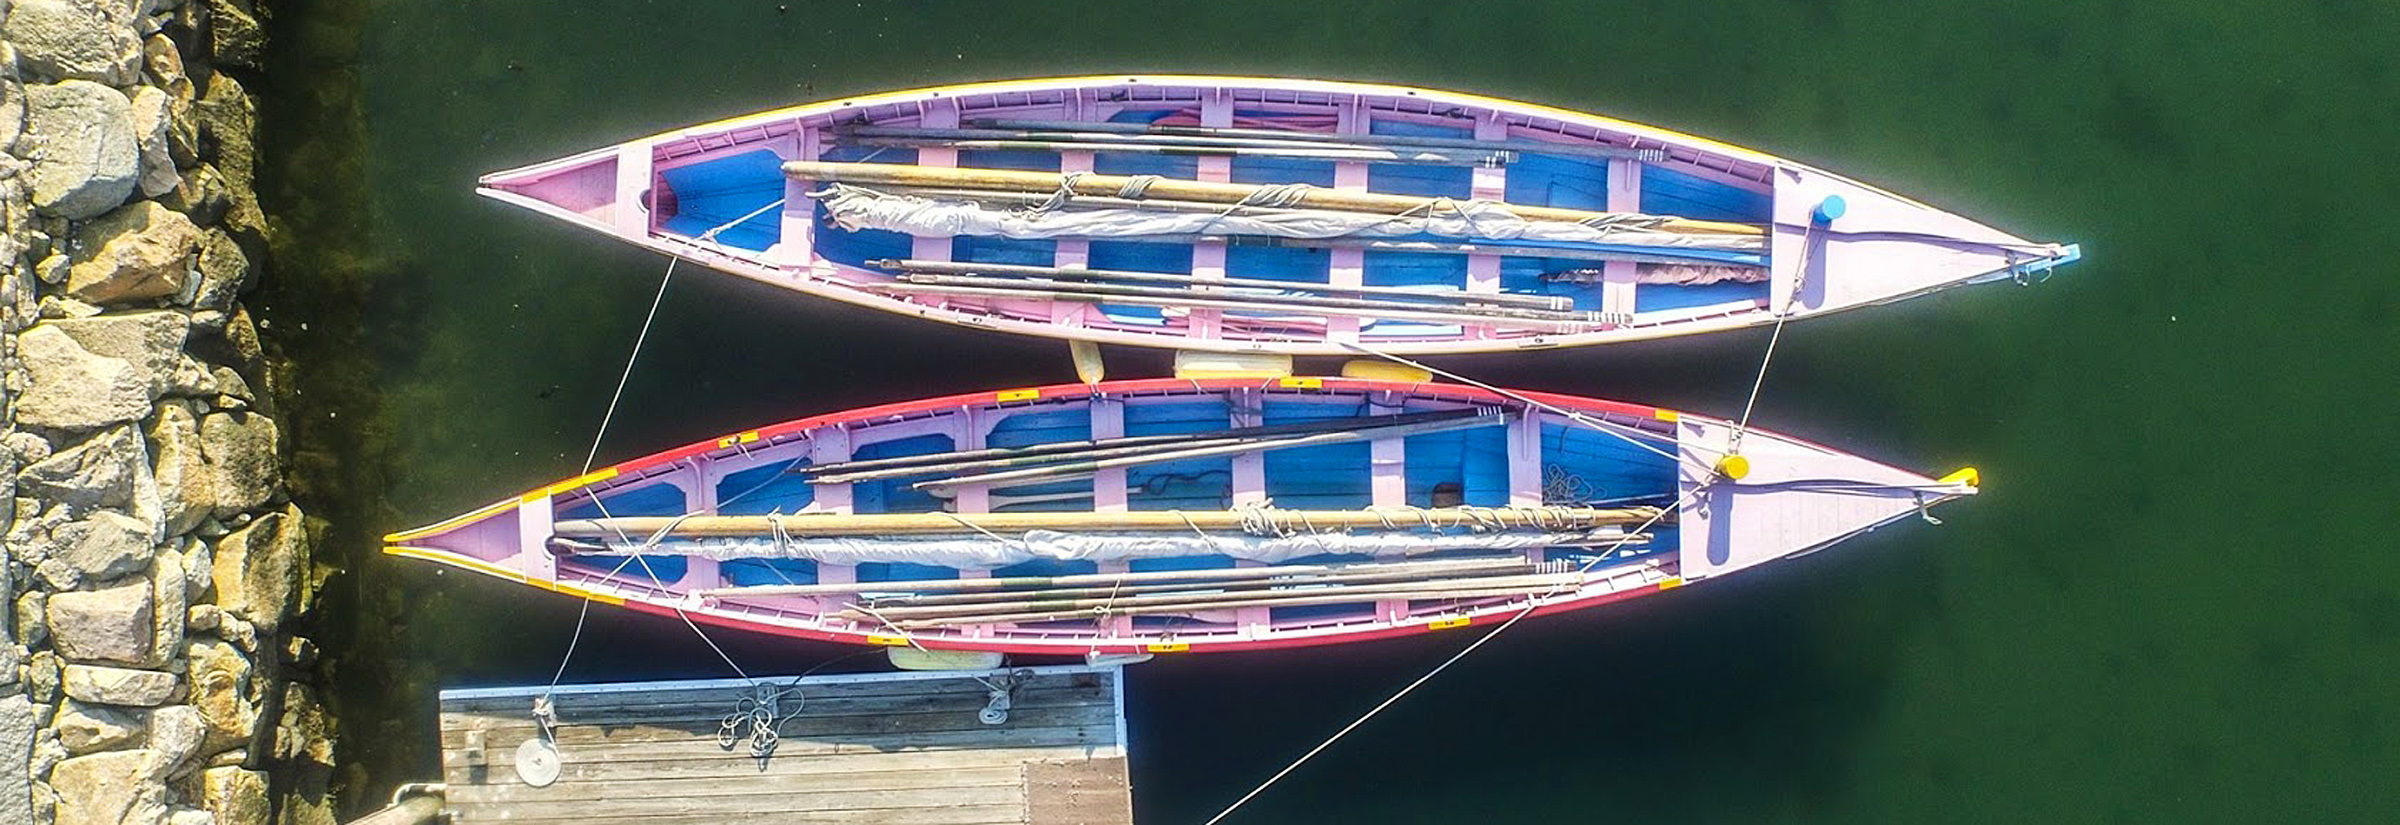 aerial view of two Azorean whaleboats in Clarks Cove in New Bedford, Massachusetts